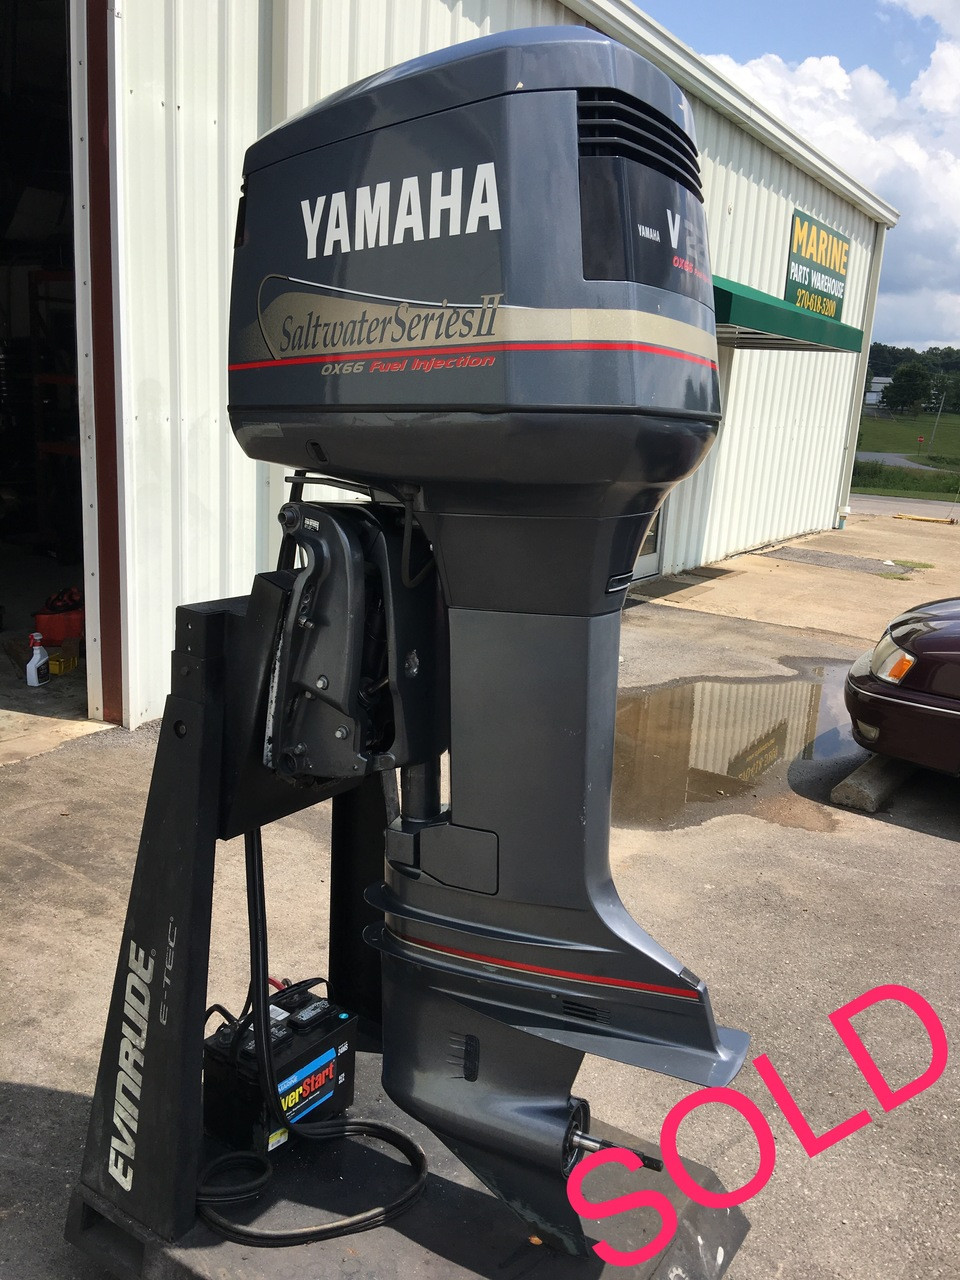 2001 yamaha v225 saltwater series ii ox66 fuel injection 3 1l v6 2 yamaha ox66 outboard wiring diagram [ 960 x 1280 Pixel ]